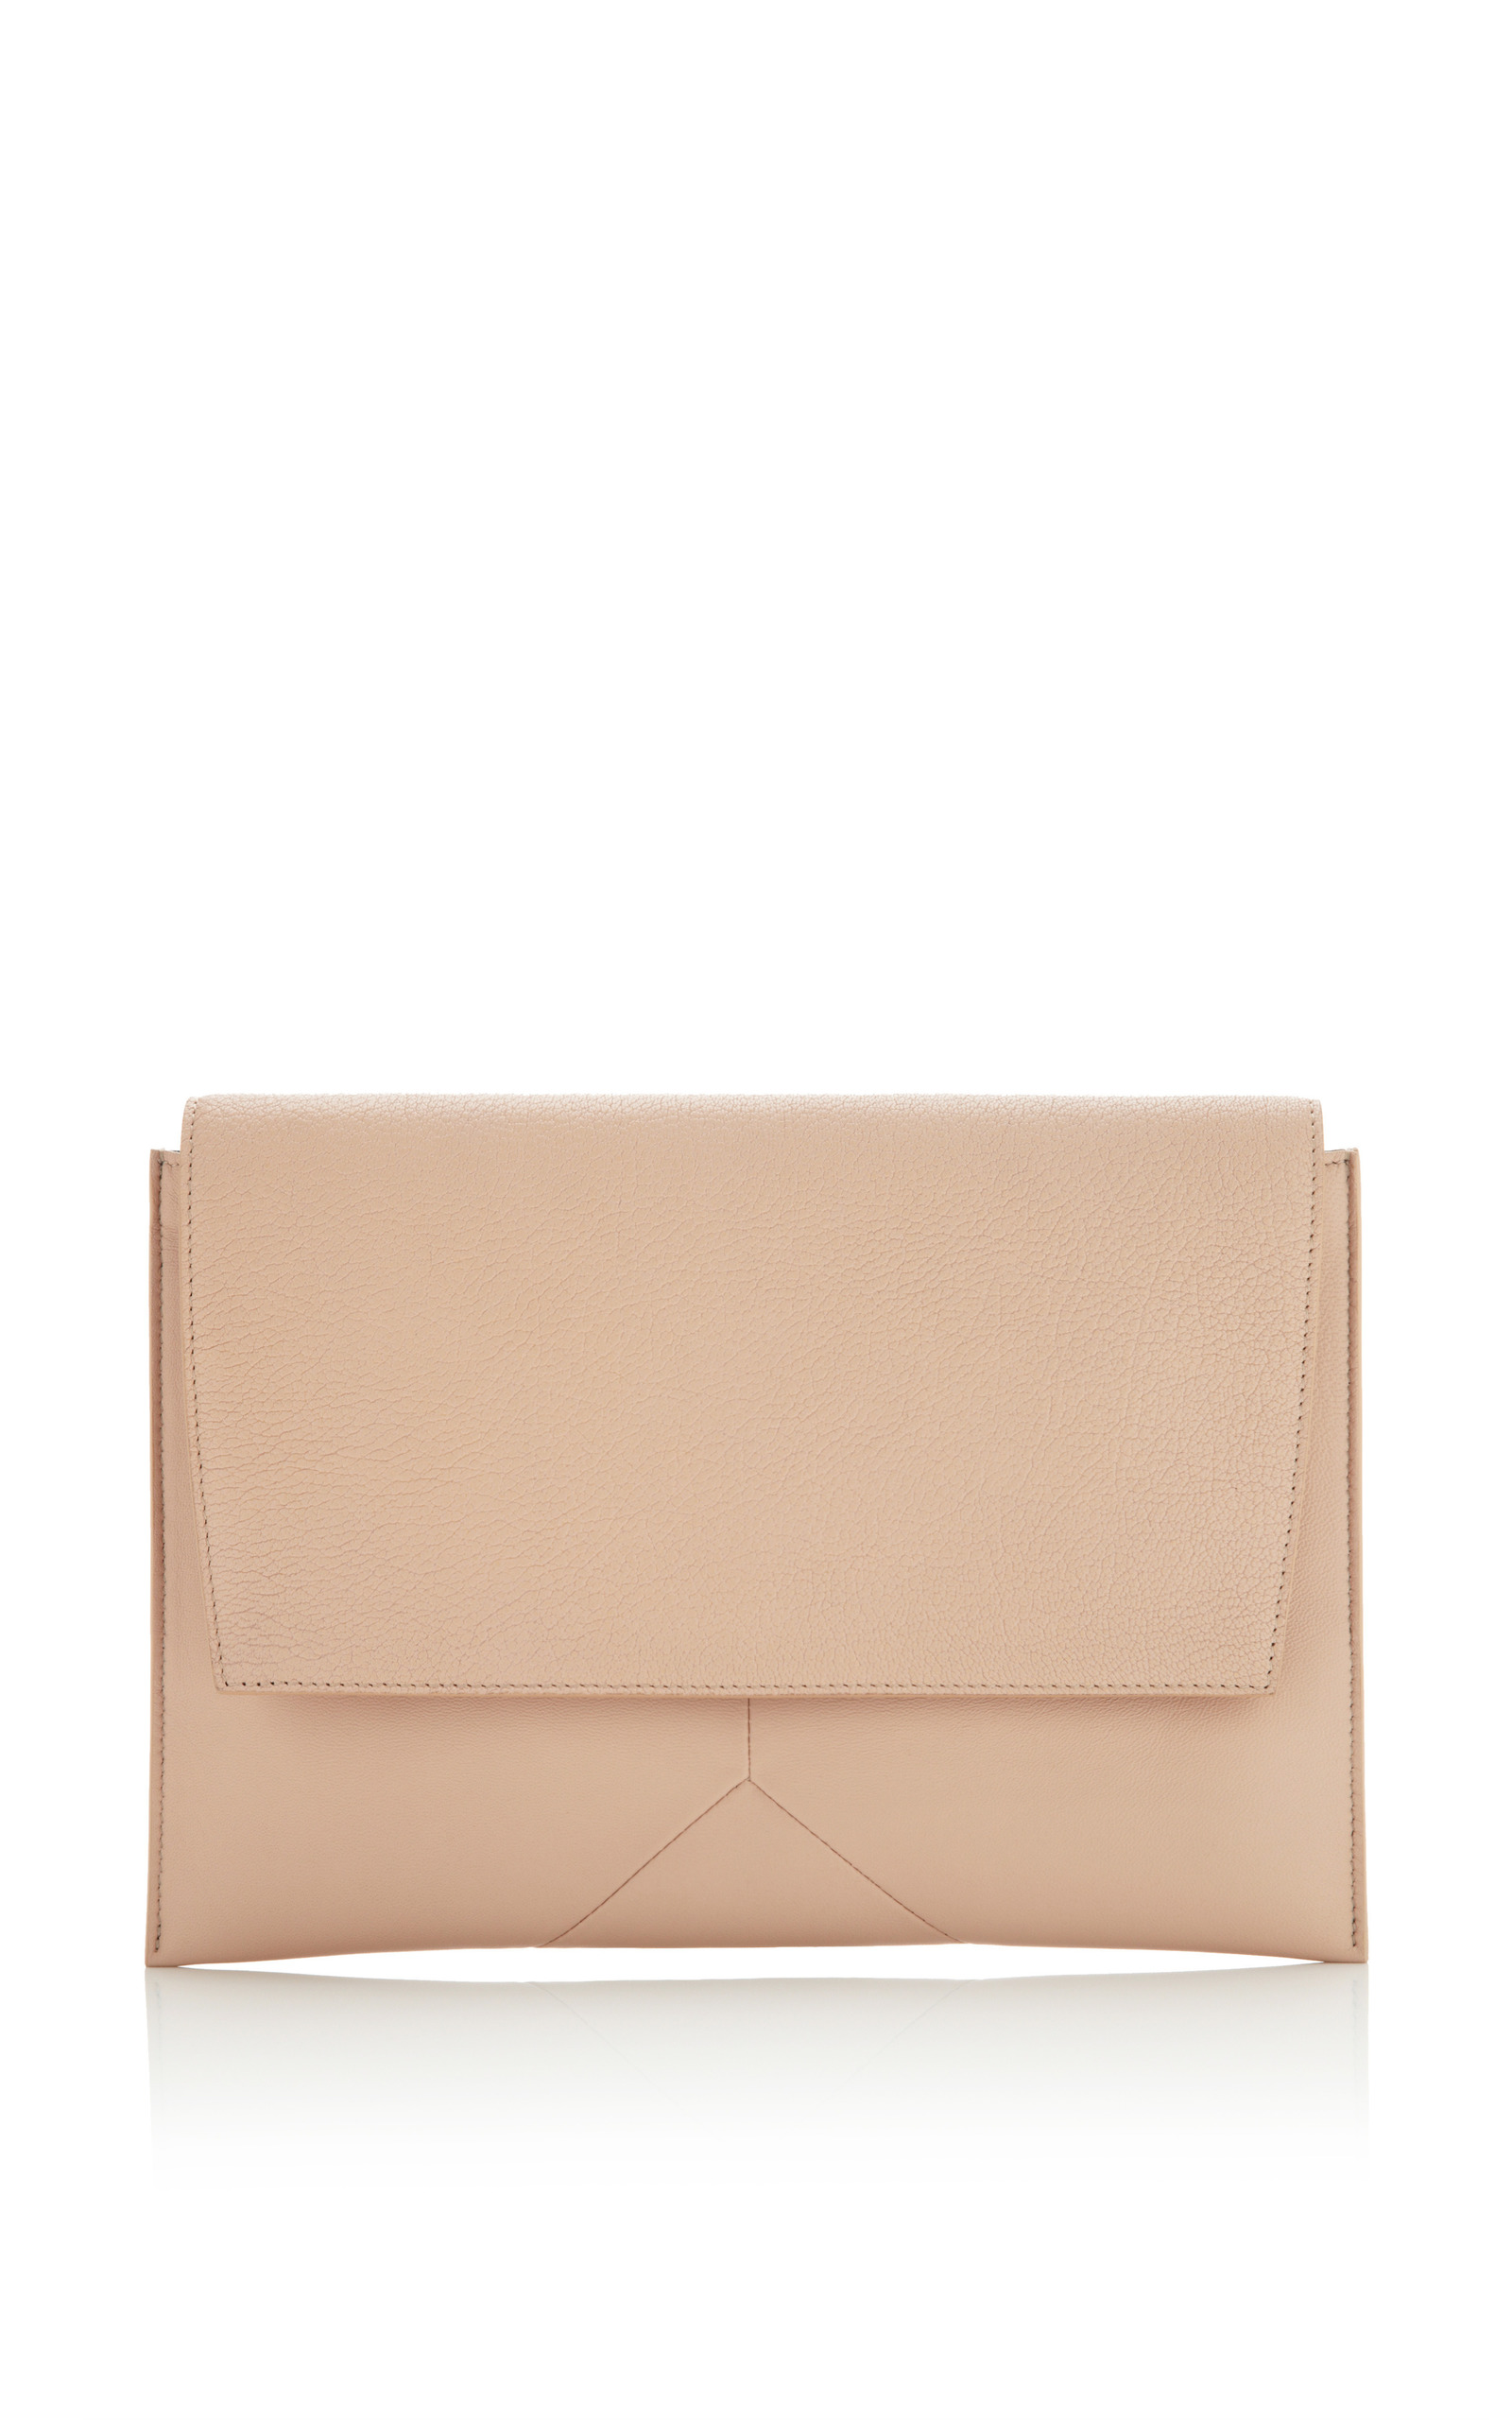 Ali Clutch In Nude Leather By Narciso Rodriguez  Moda Operandi-3523